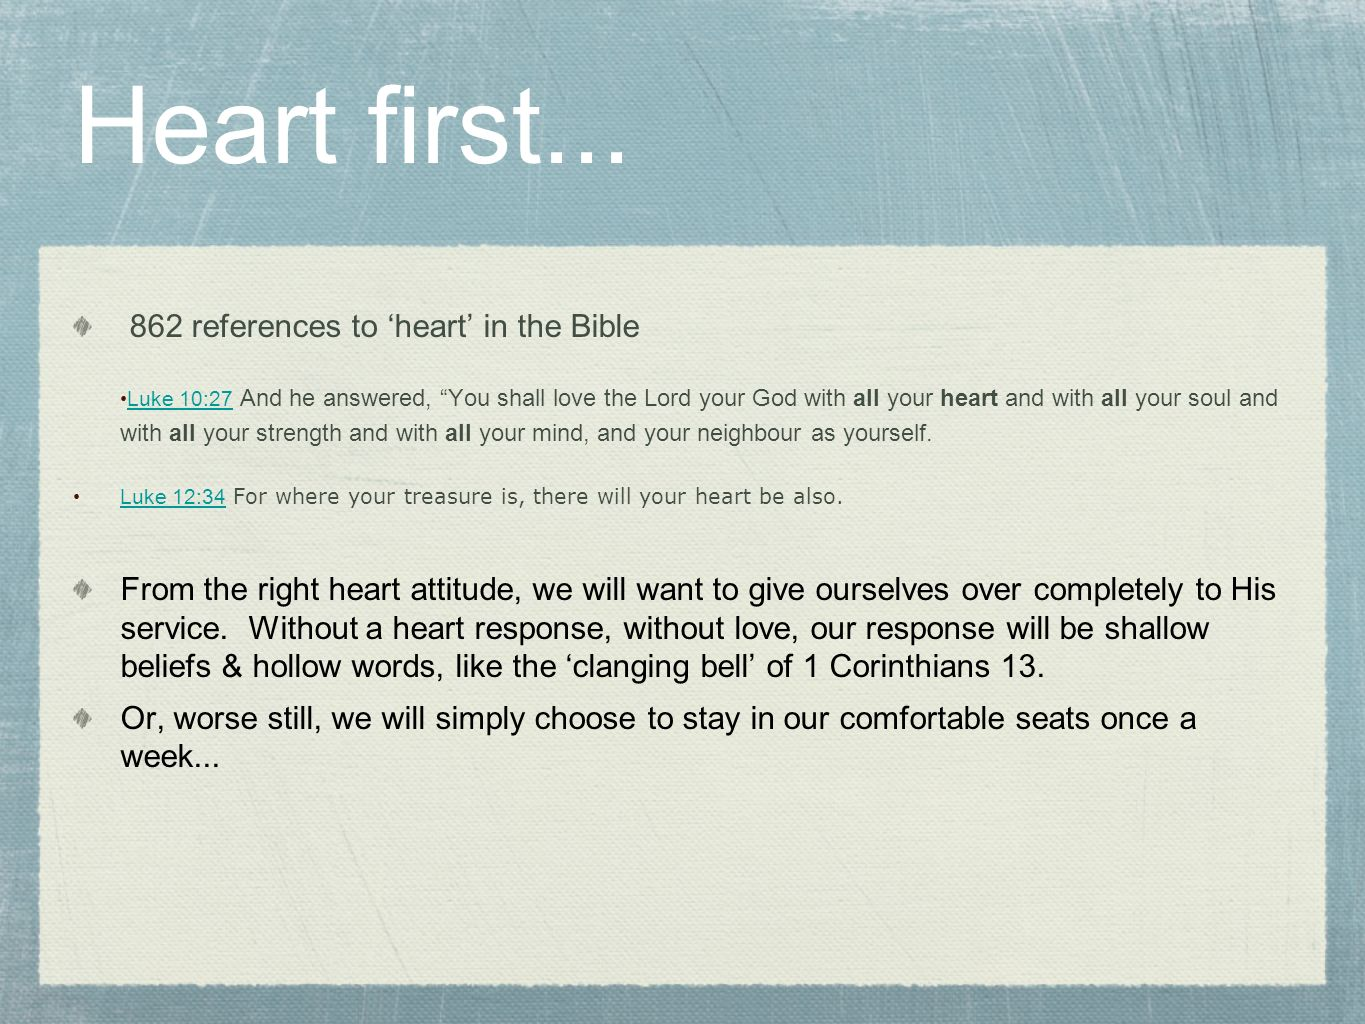 Heart first... 862 references to 'heart' in the Bible